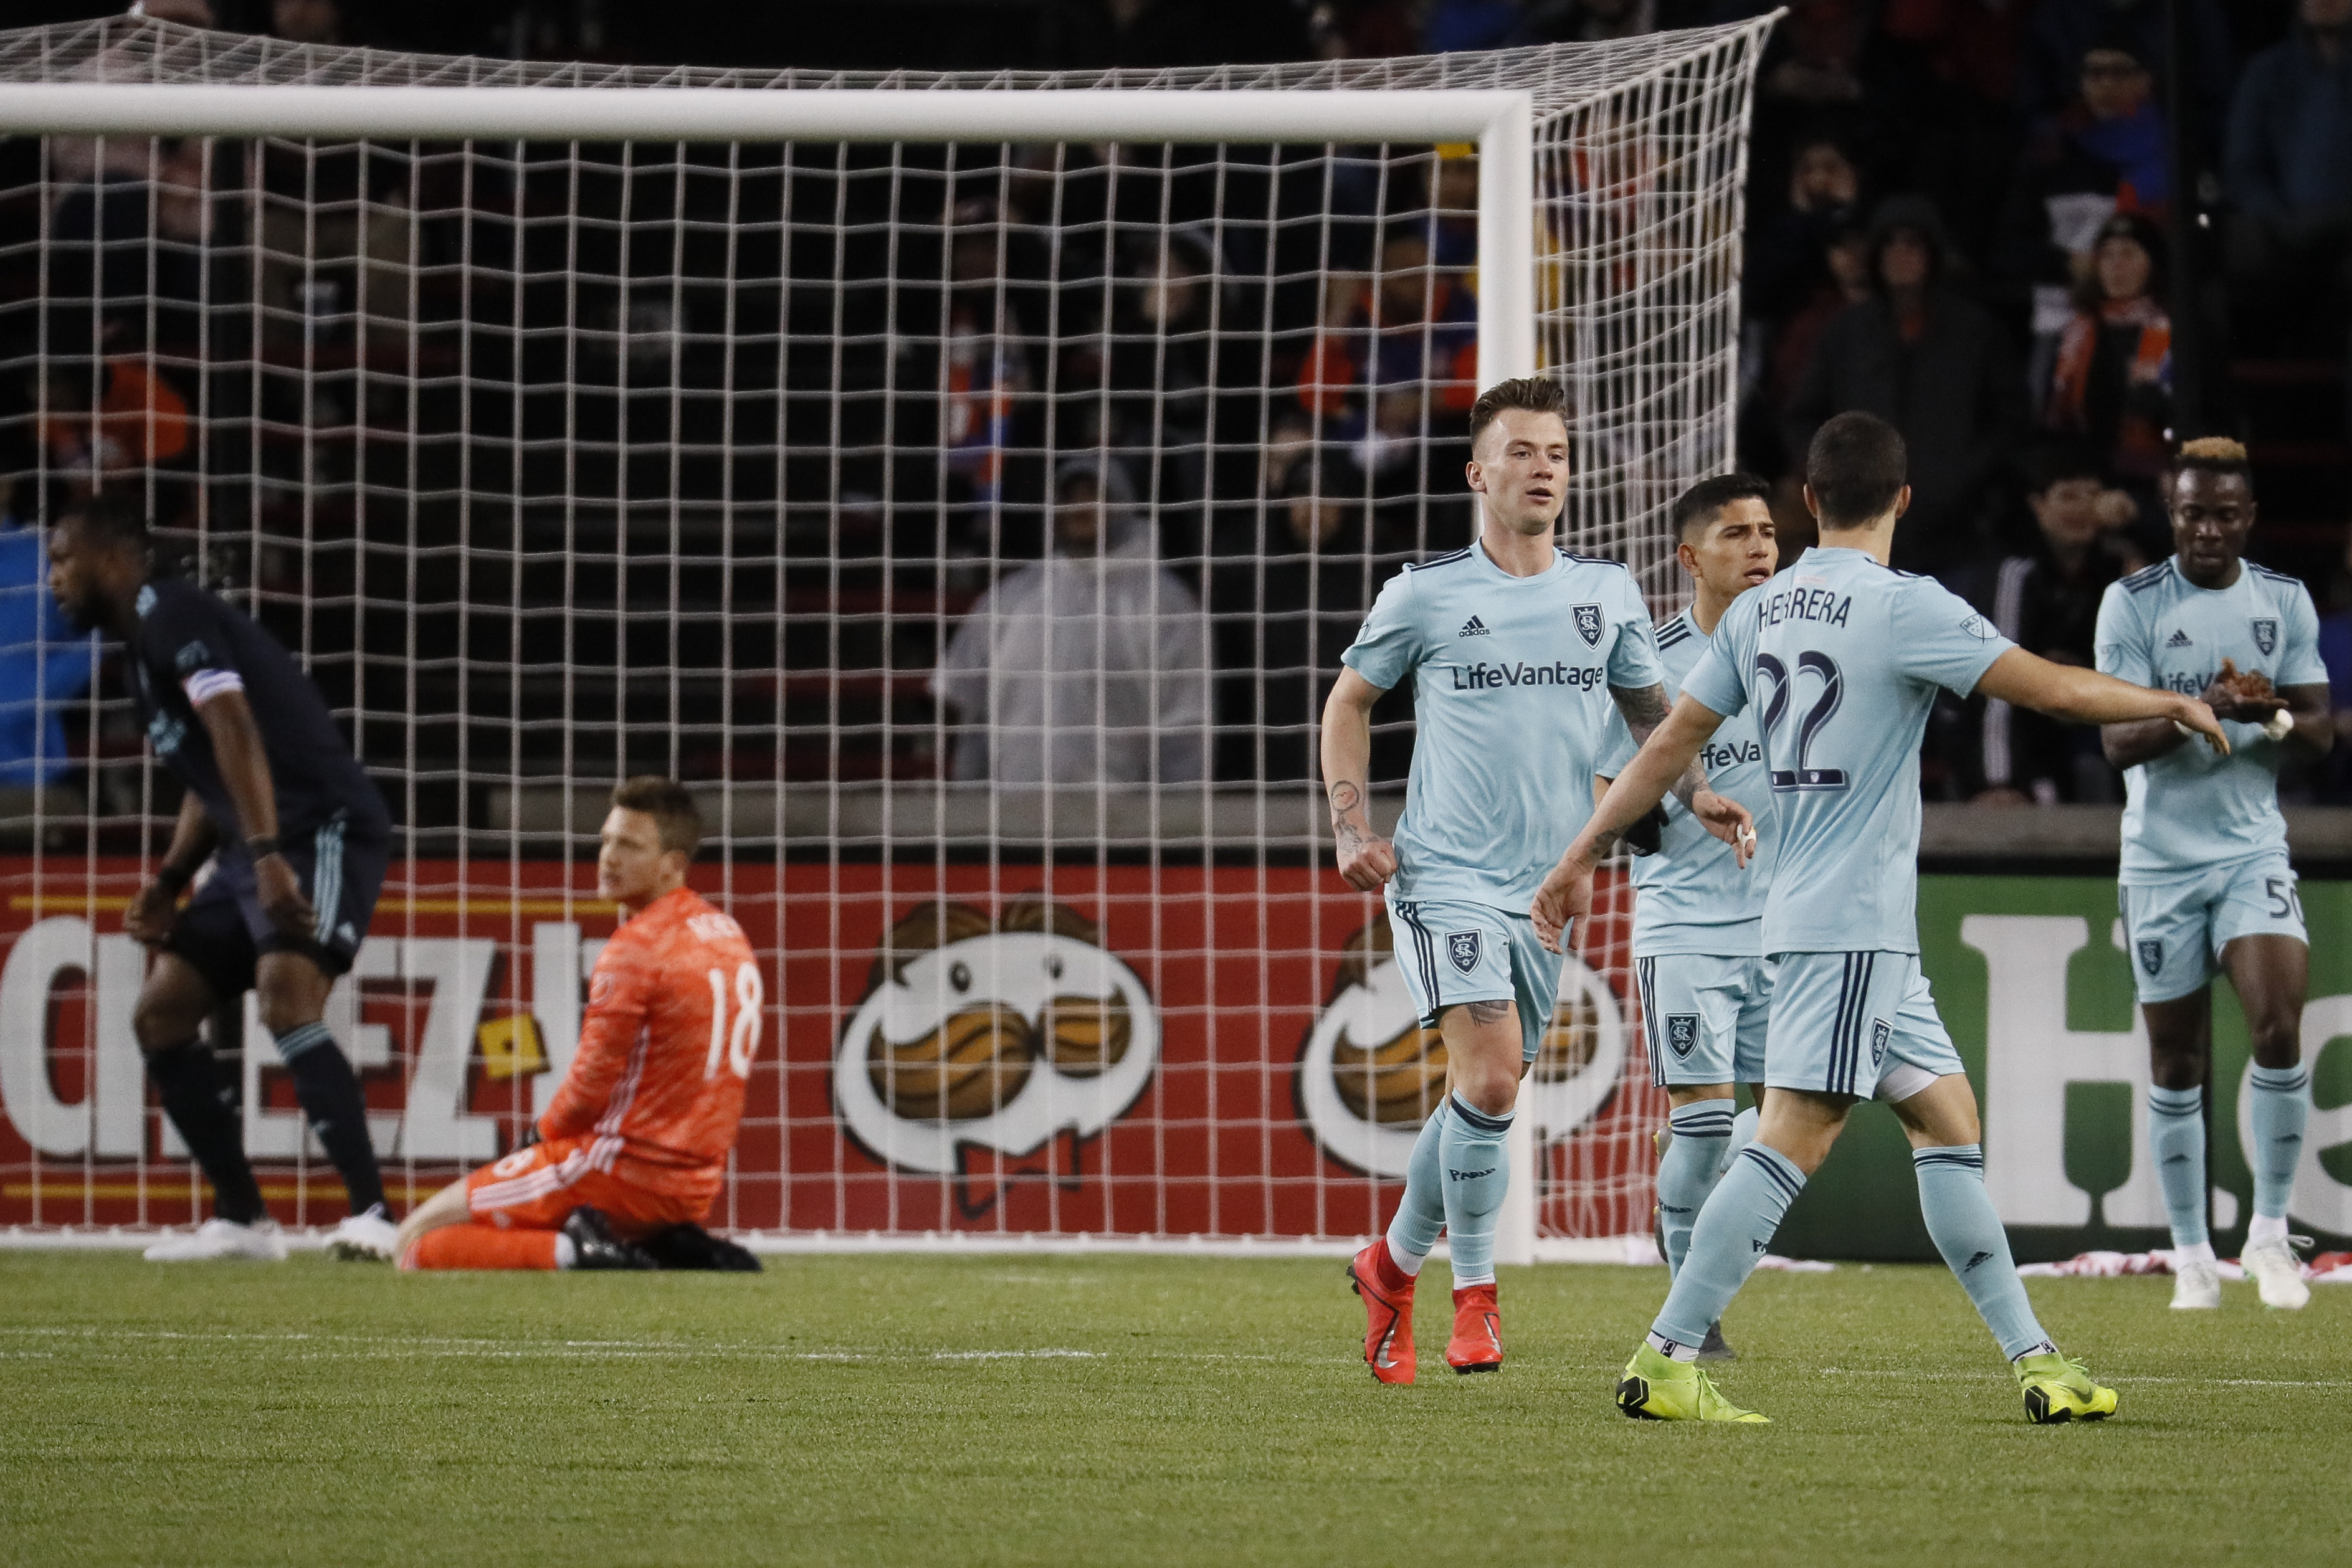 Real Salt Lake midfielder Albert Rusnak, center, celebrates with his teammates after scoring during the first half of an MLS soccer match against FC Cincinnati, Friday, April 19, 2019, in Cincinnati. (AP Photo/John Minchillo)